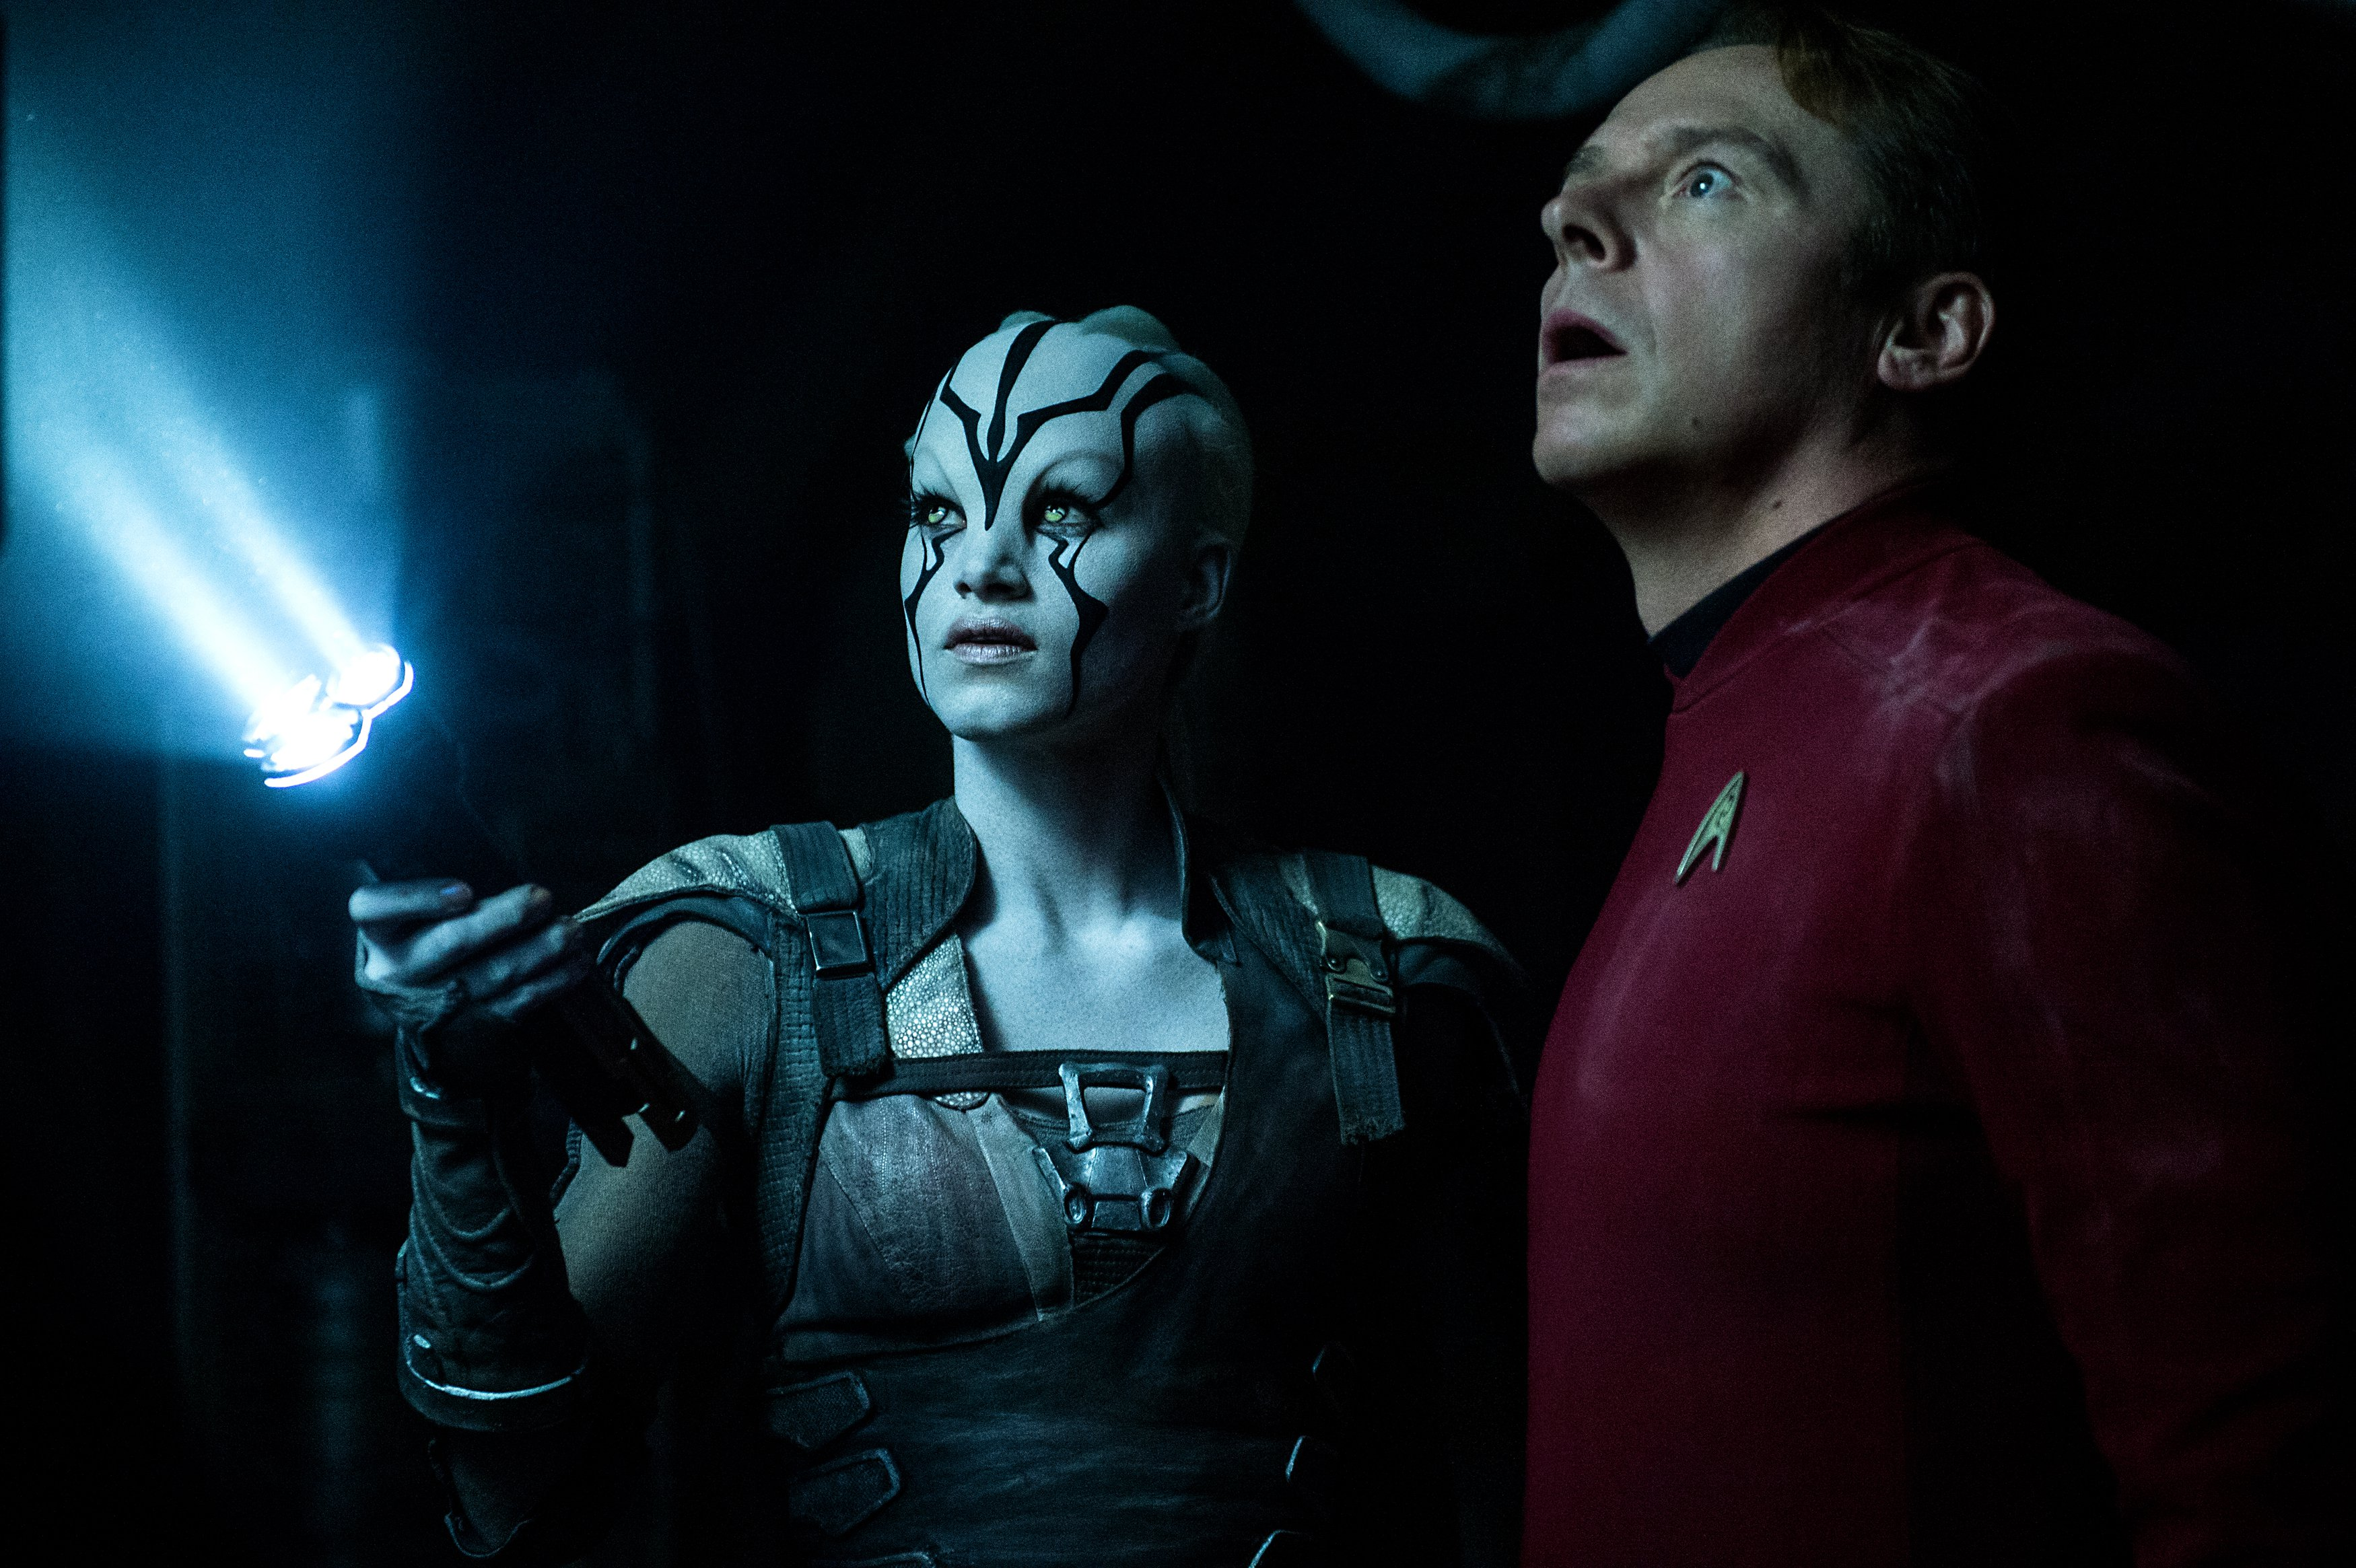 Star Trek: Mindenen túl / Star Trek Beyond (2016)